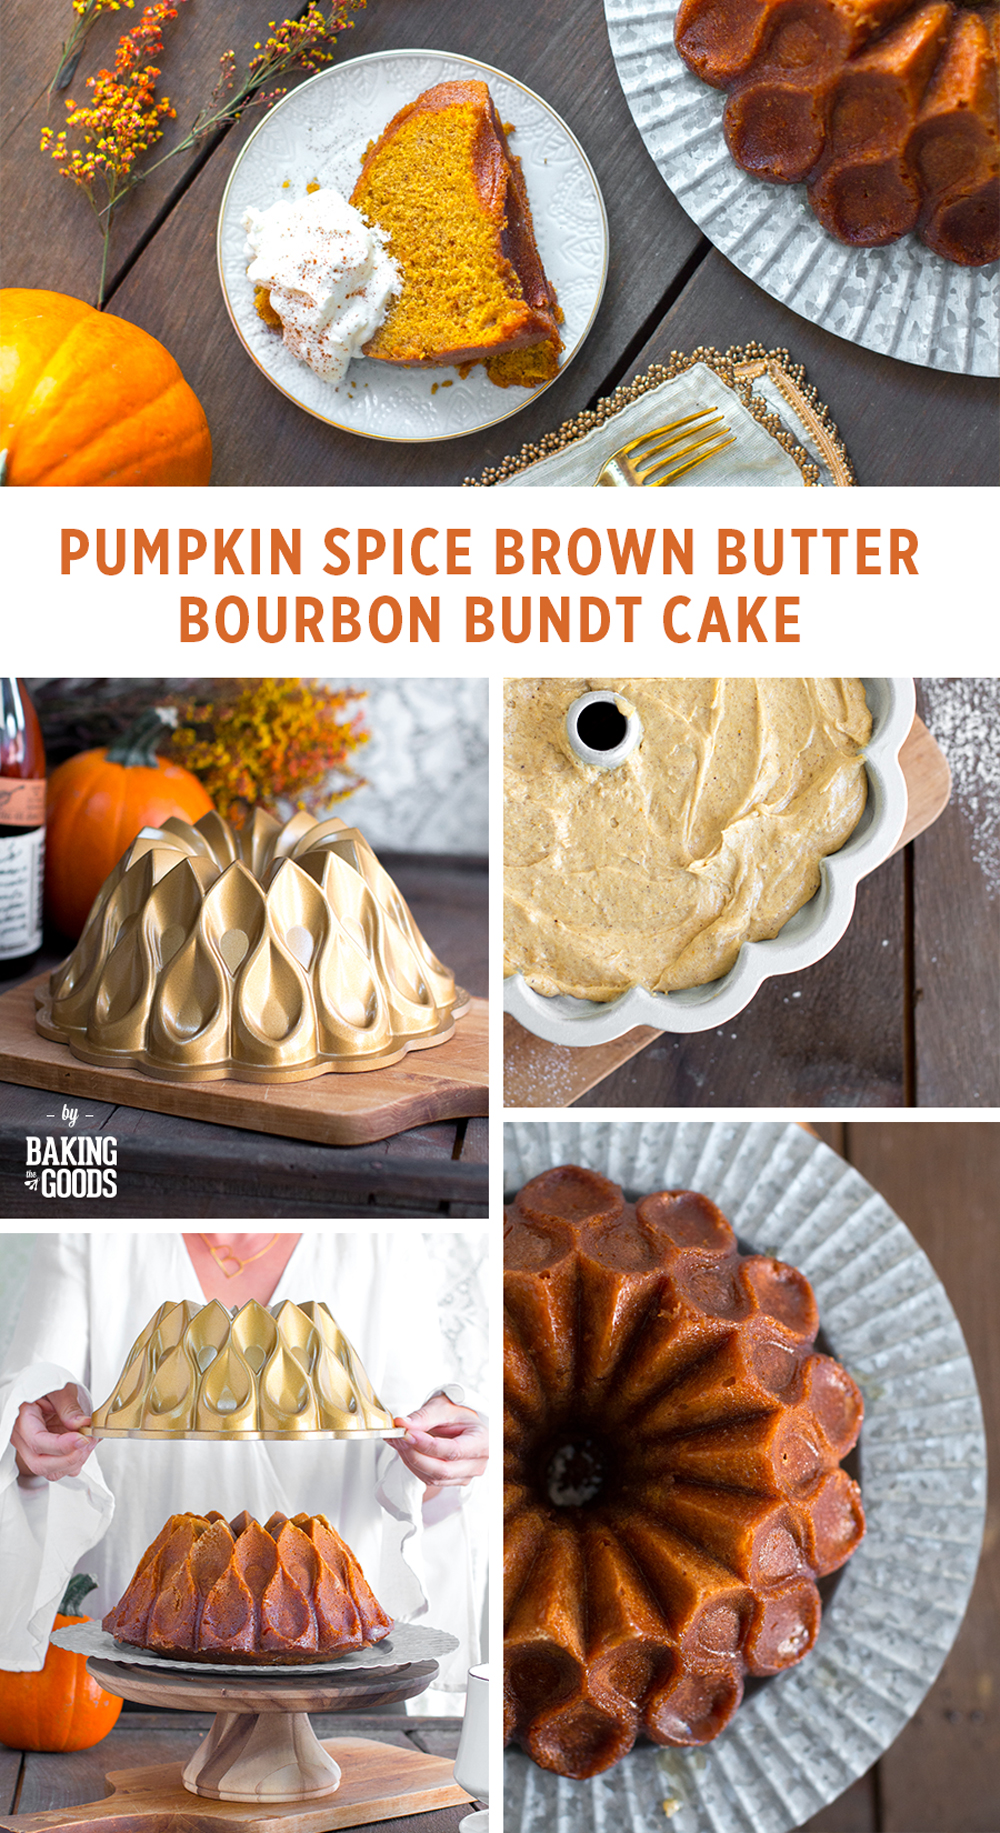 Pumpkin Spice Brown Butter Bourbon Bundt Cake by Baking The Goods